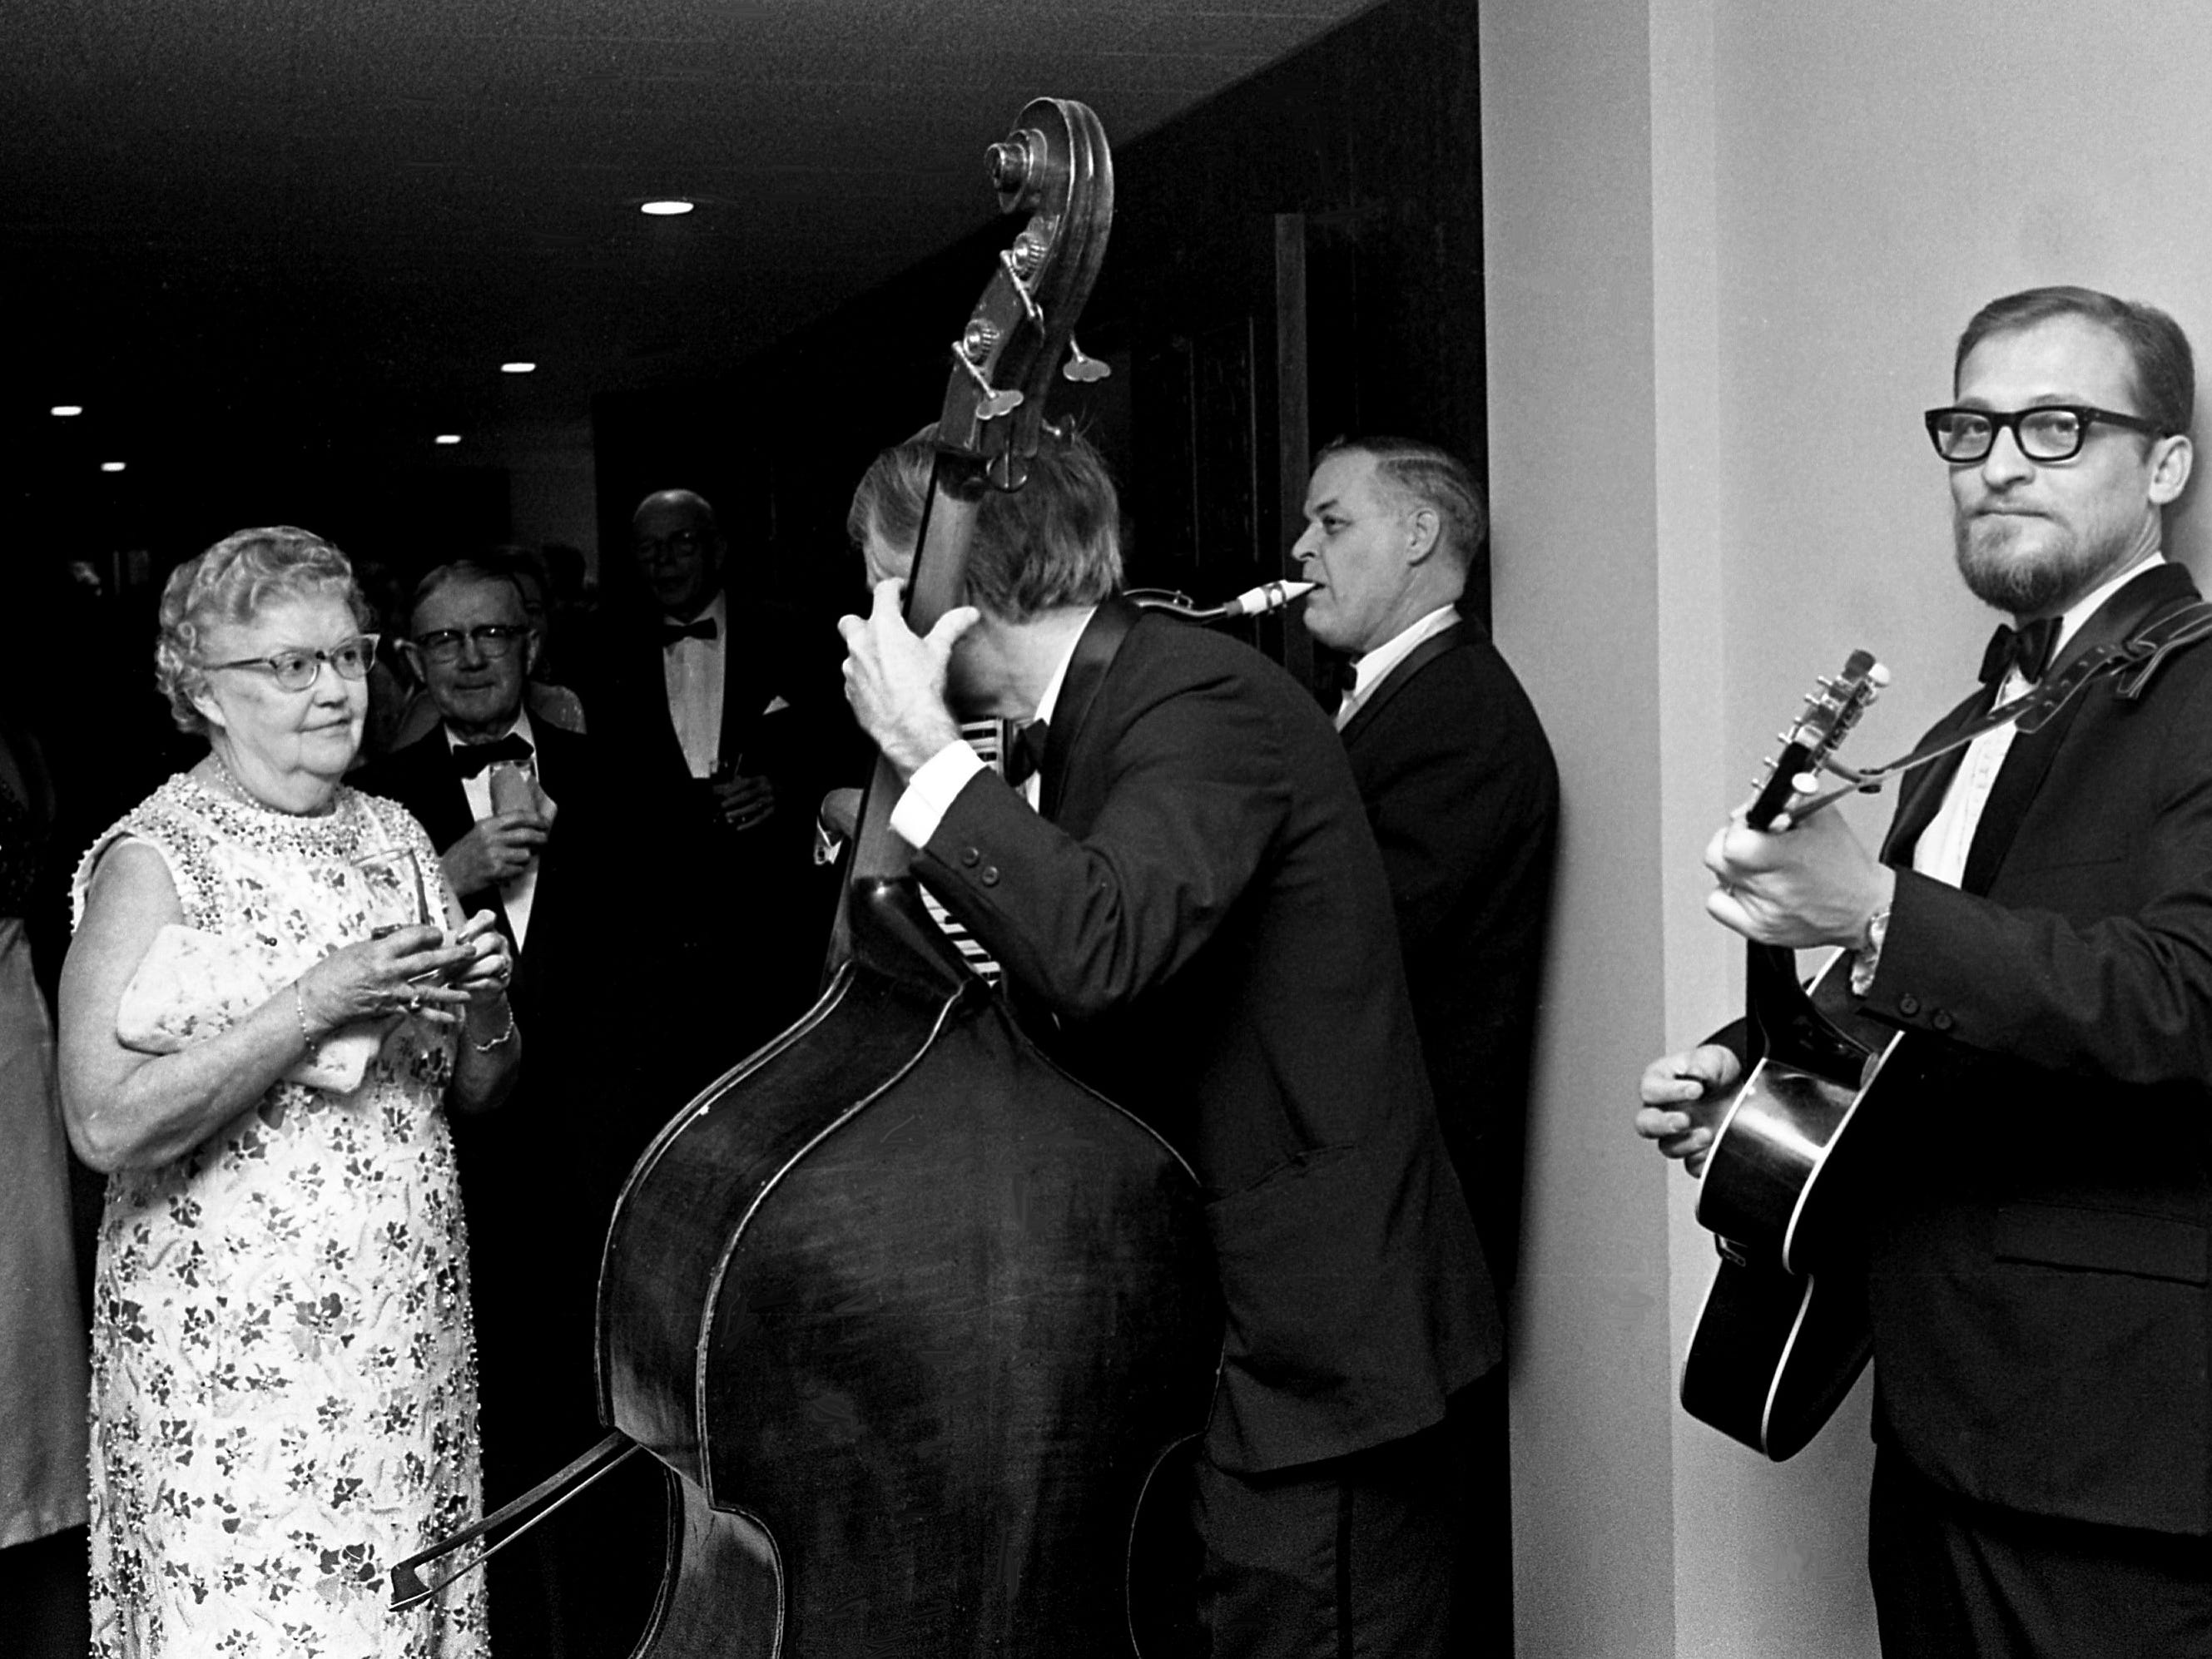 With music furnished by Sam Hollingsworth, Mrs. John Youmans, left, breaks into her own impromptu finger-snapping jig during the informal hour of the new Sheraton-Nashville's Opening Ball on Dec. 13, 1968.